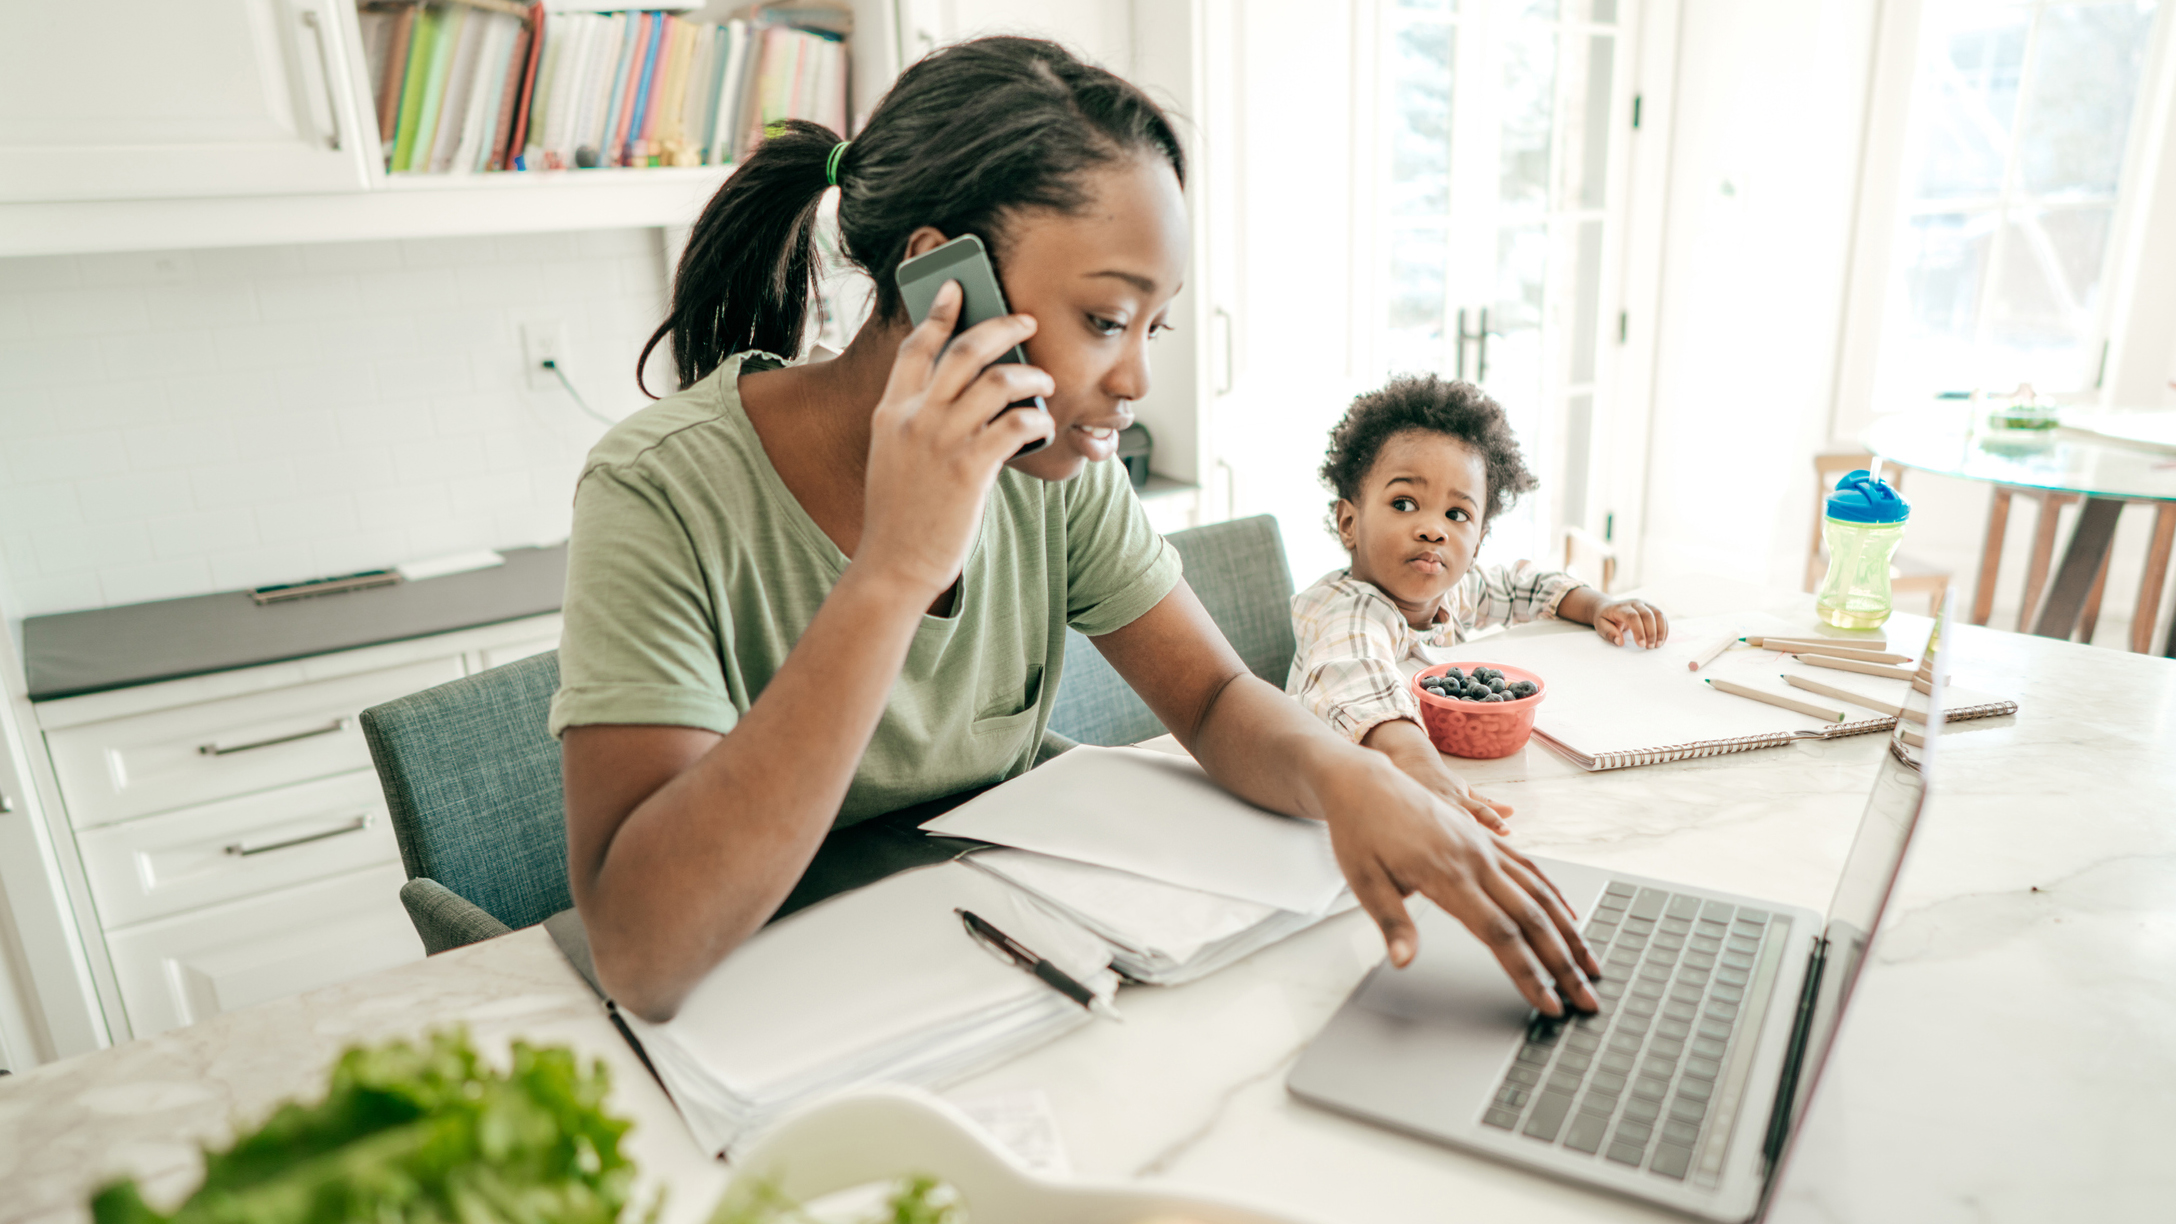 Let's Be Honest, Mamas: There's No Such Thing as Work-Life Balance